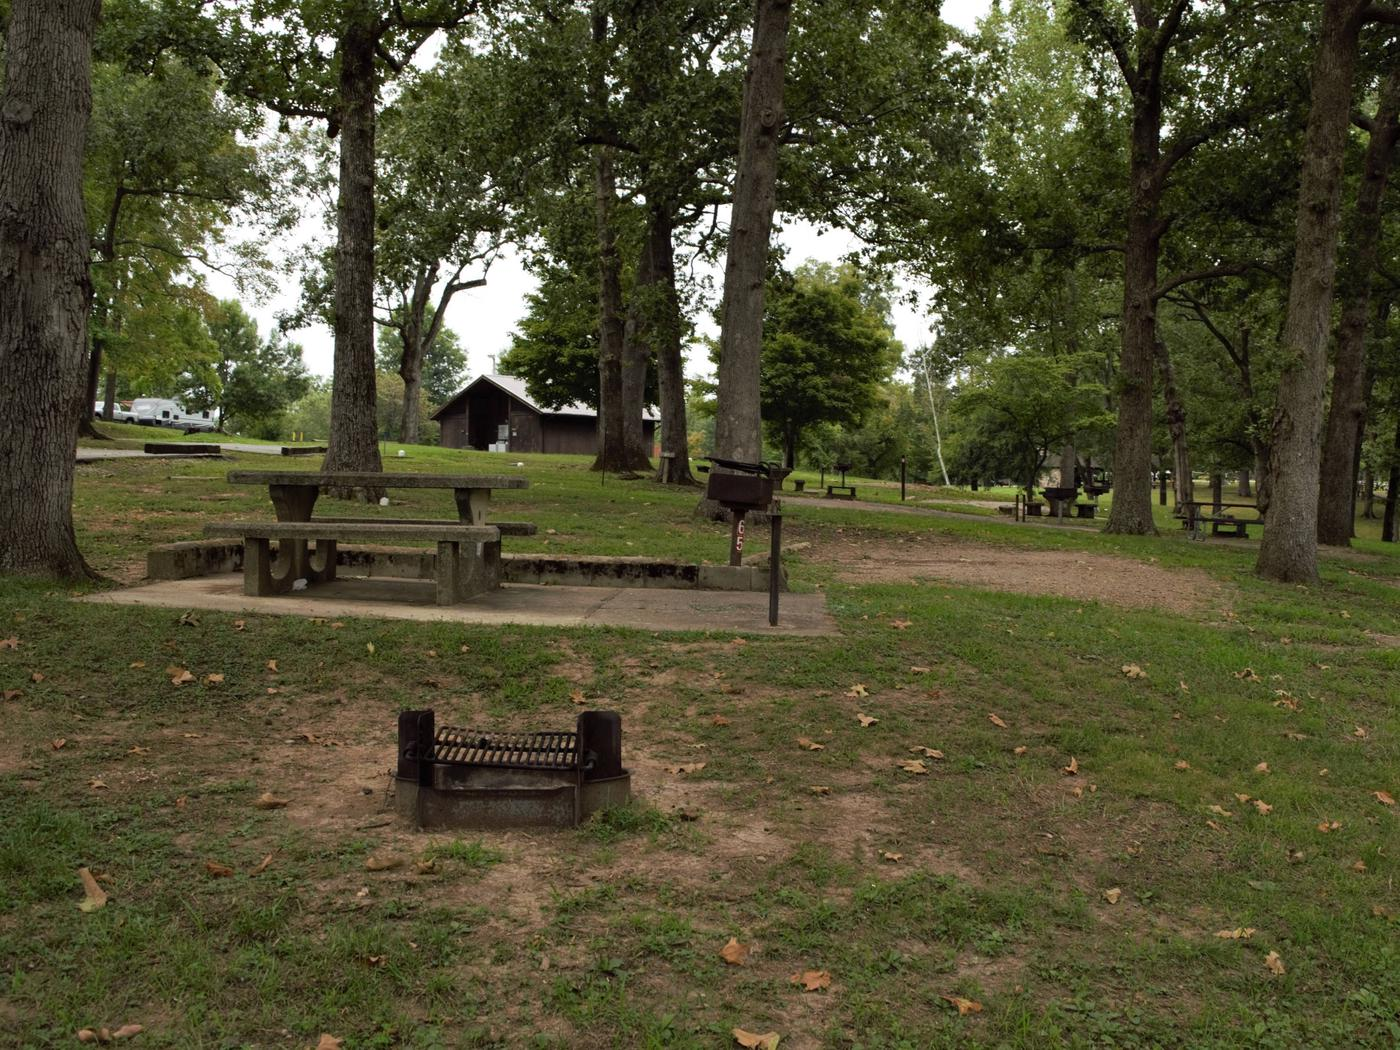 WILLOW GROVE CAMPGROUND SITE #65